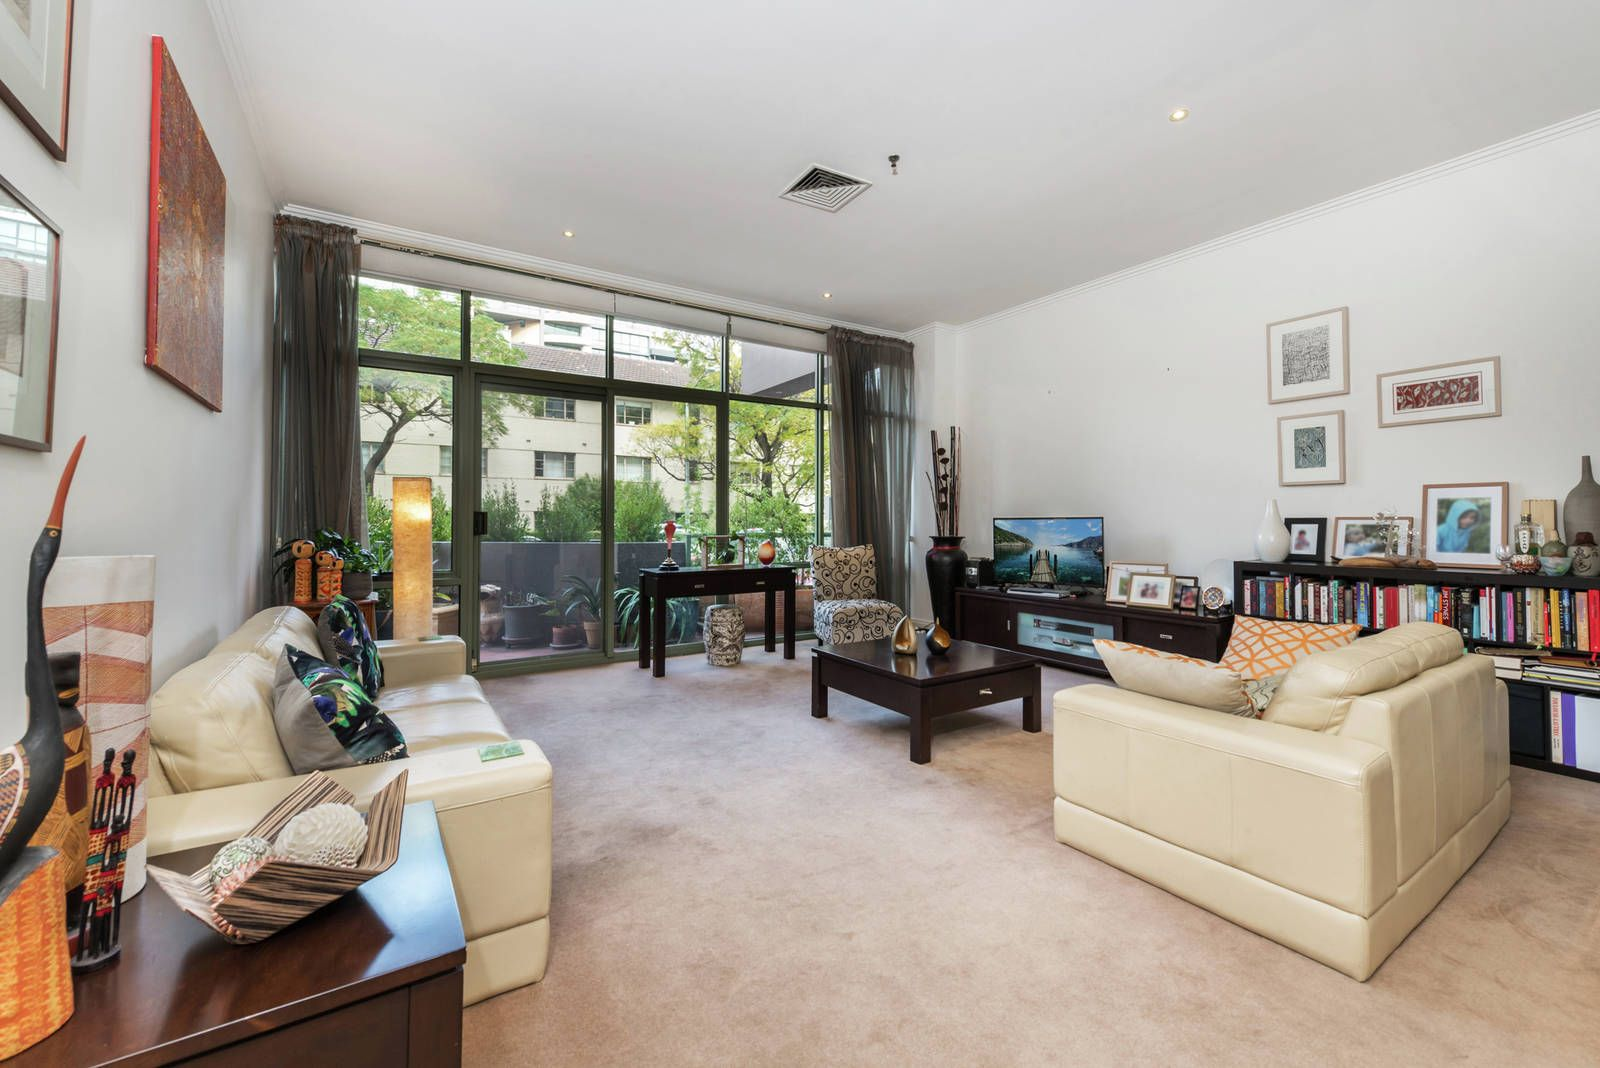 G02/15 Queens Road, Melbourne 3004 VIC 3004, Image 1